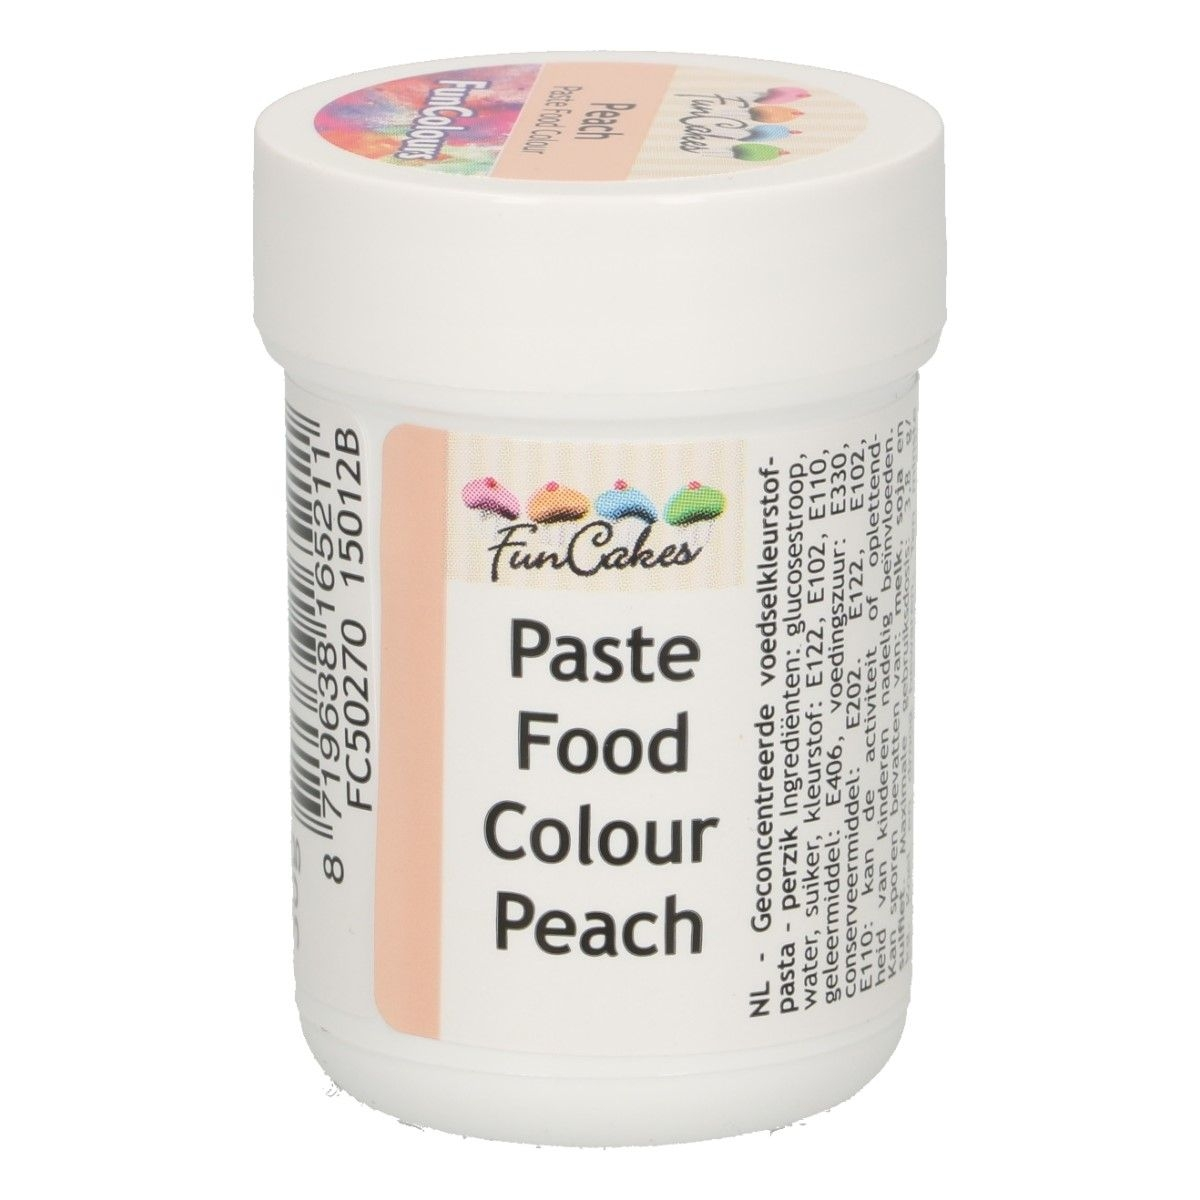 /f/u/funcakes_funcolours_paste_food_colour_-_peach.jpg